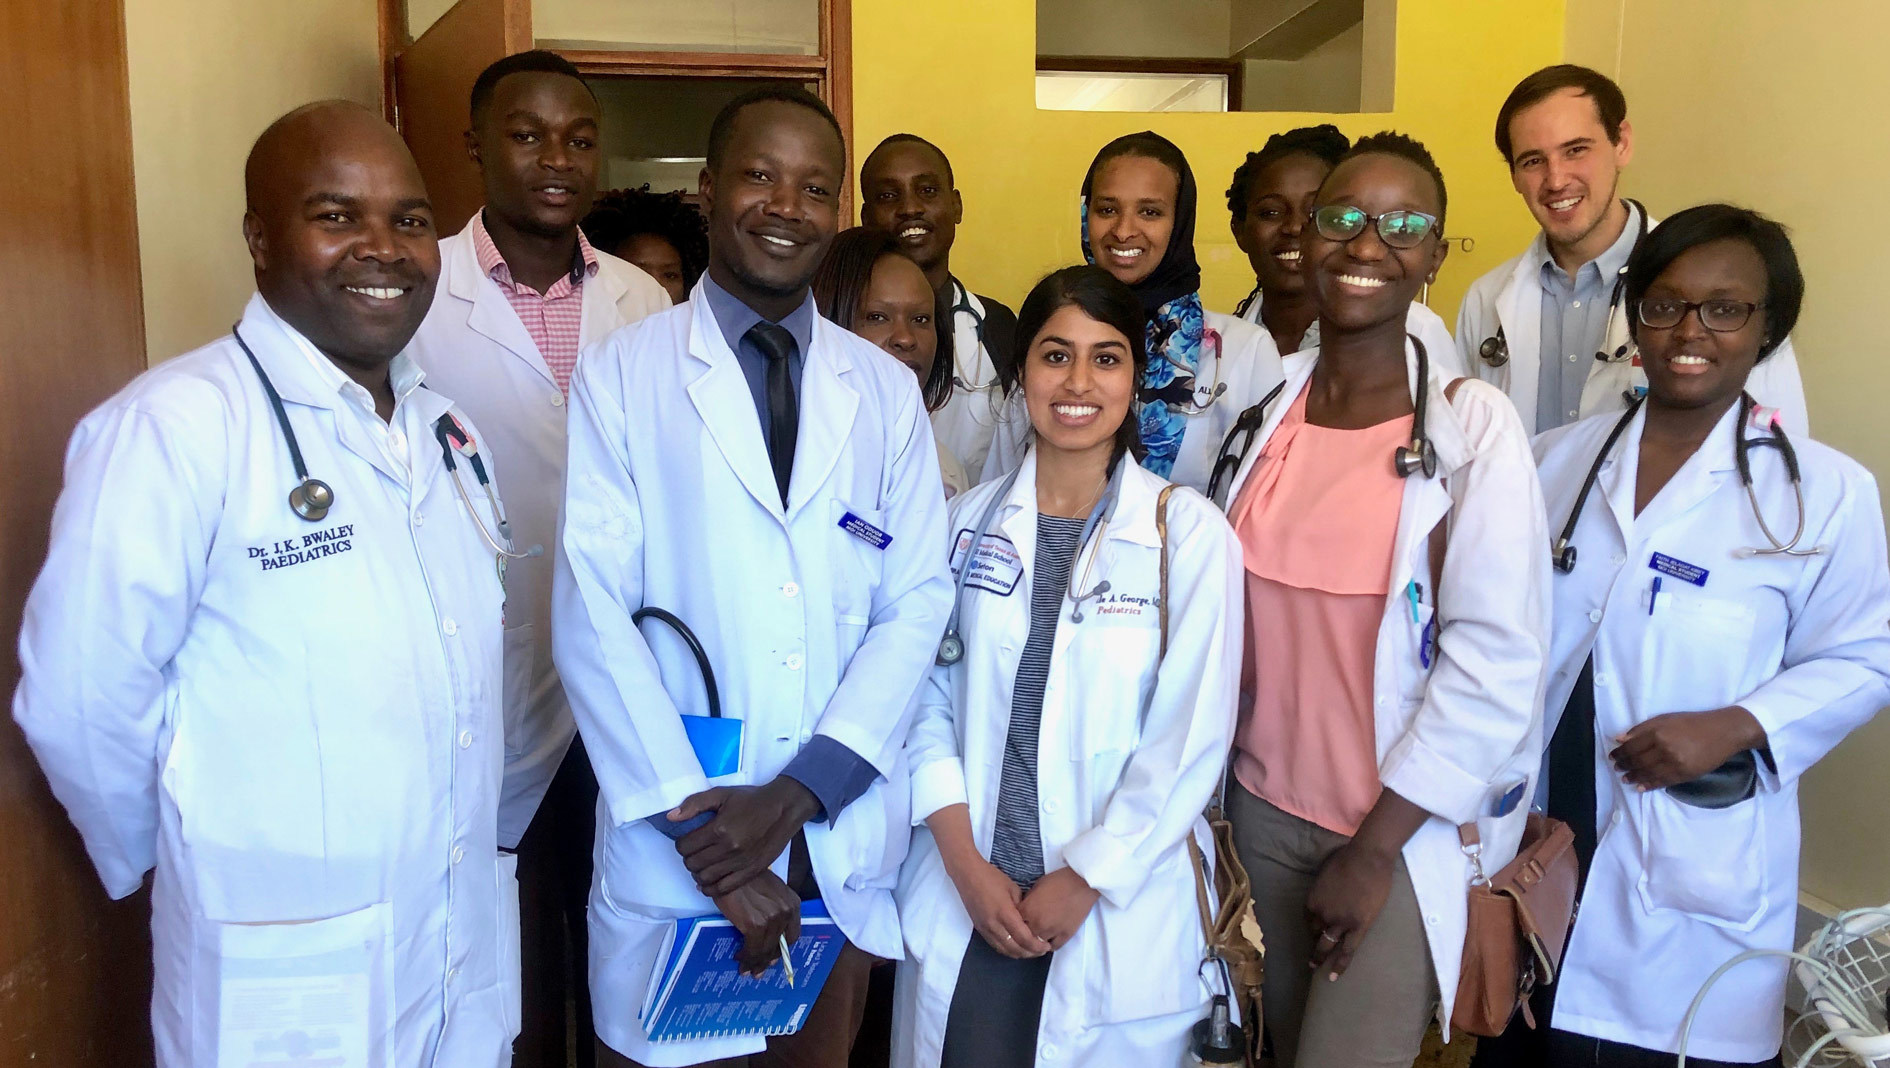 Division of Global Health students working in Kenya